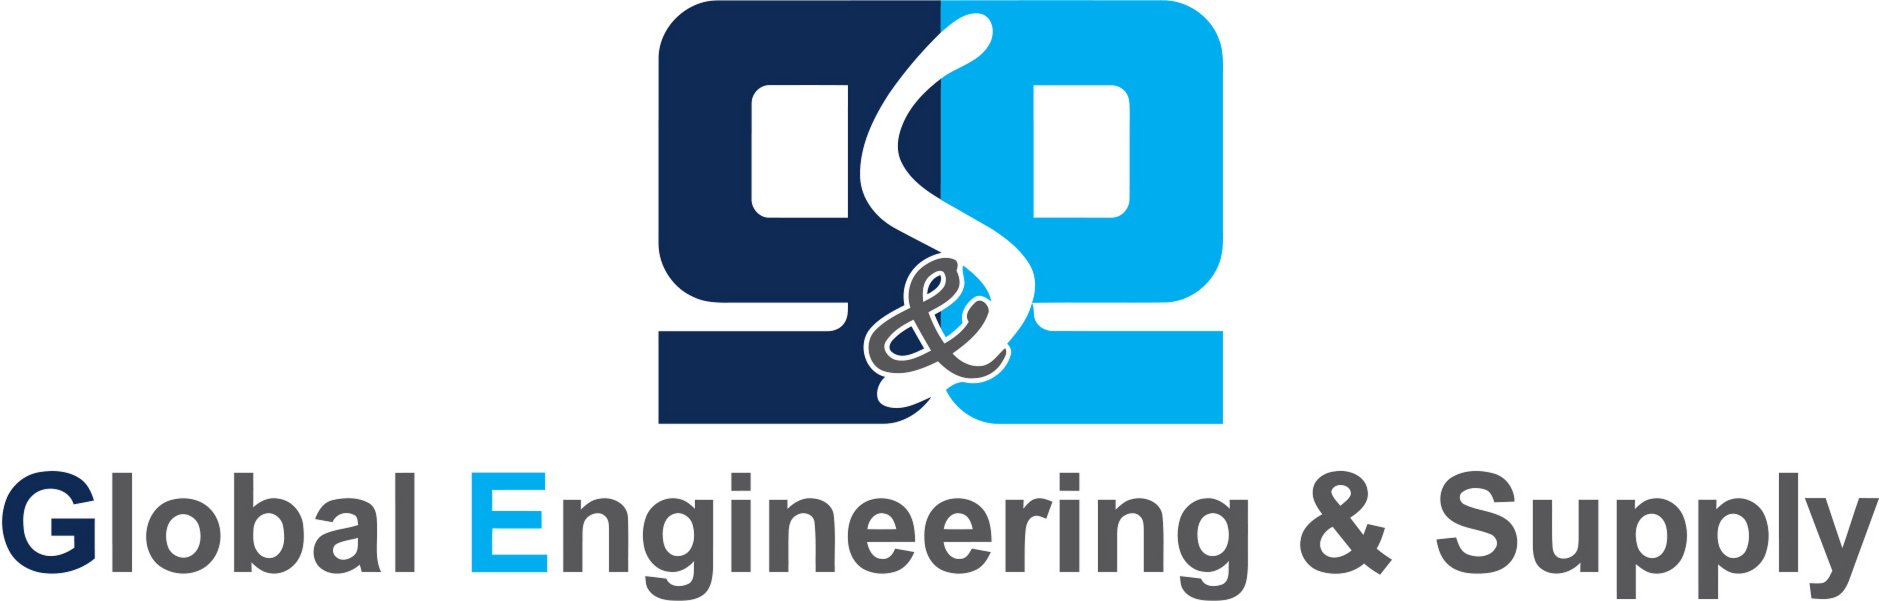 Global Engineering & Supply